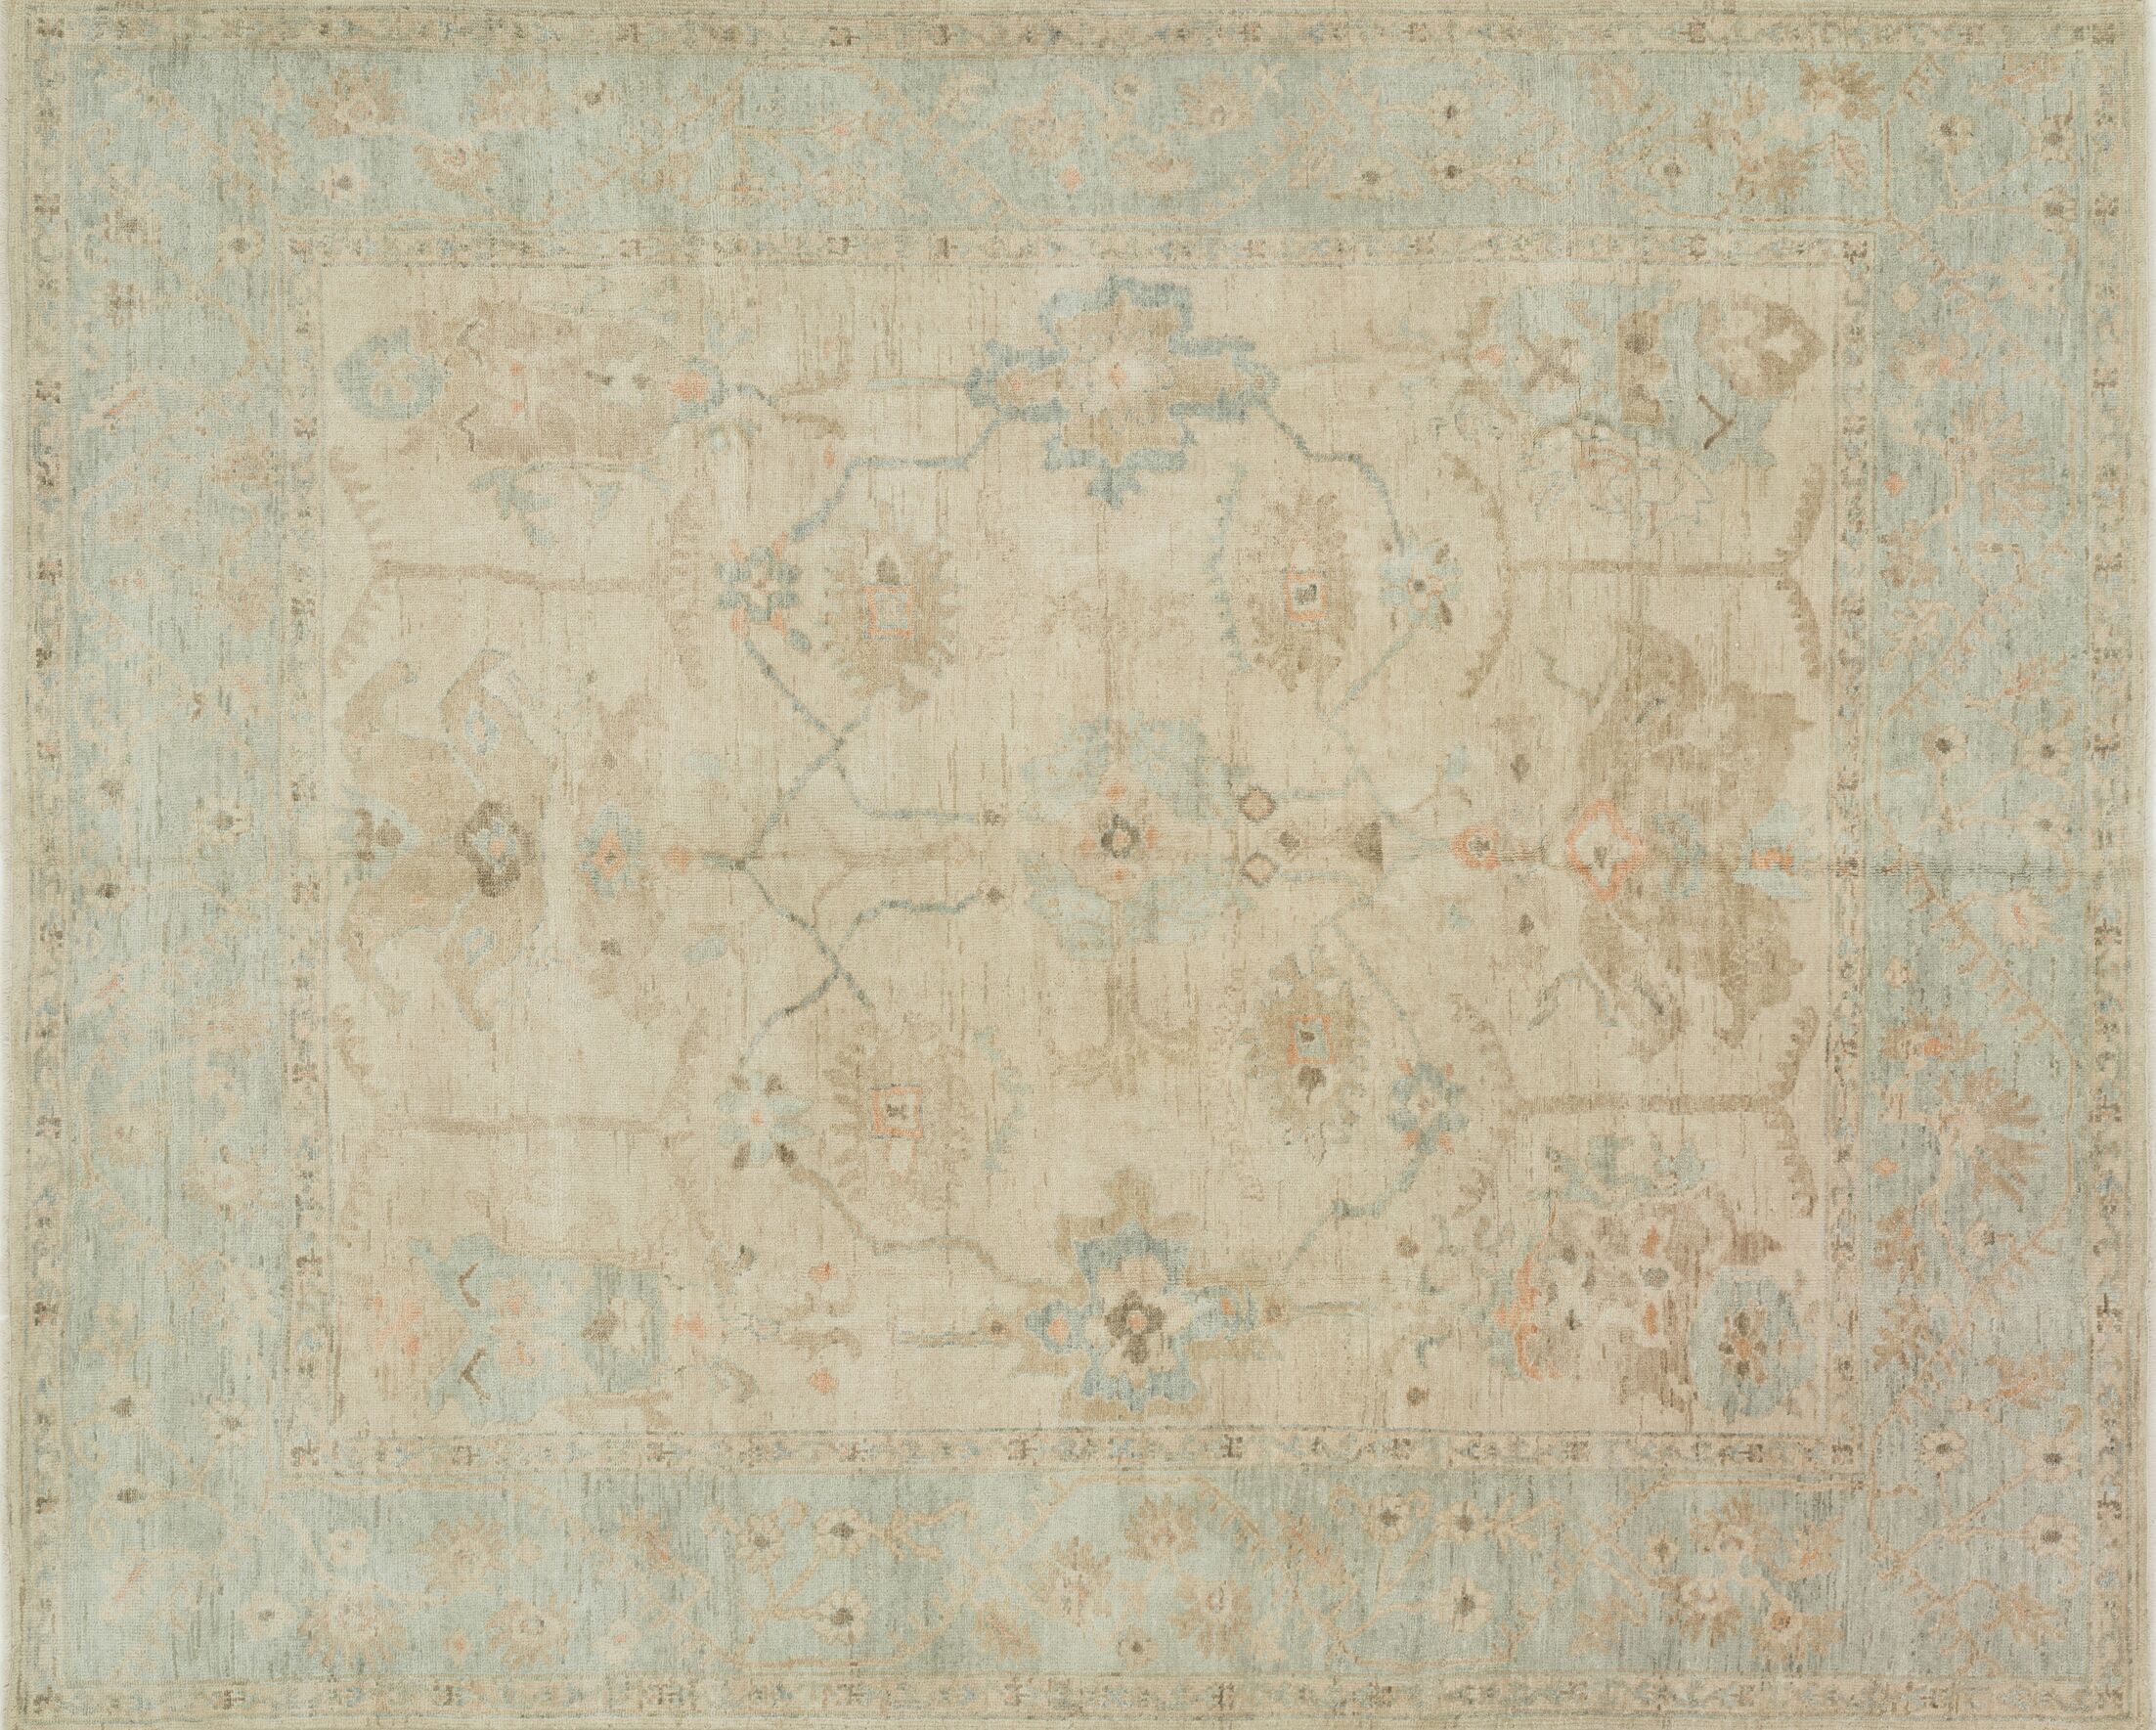 Abelard Hand-Knotted Stone/Mist Area Rug Rug Size: Rectangle 2' x 3'